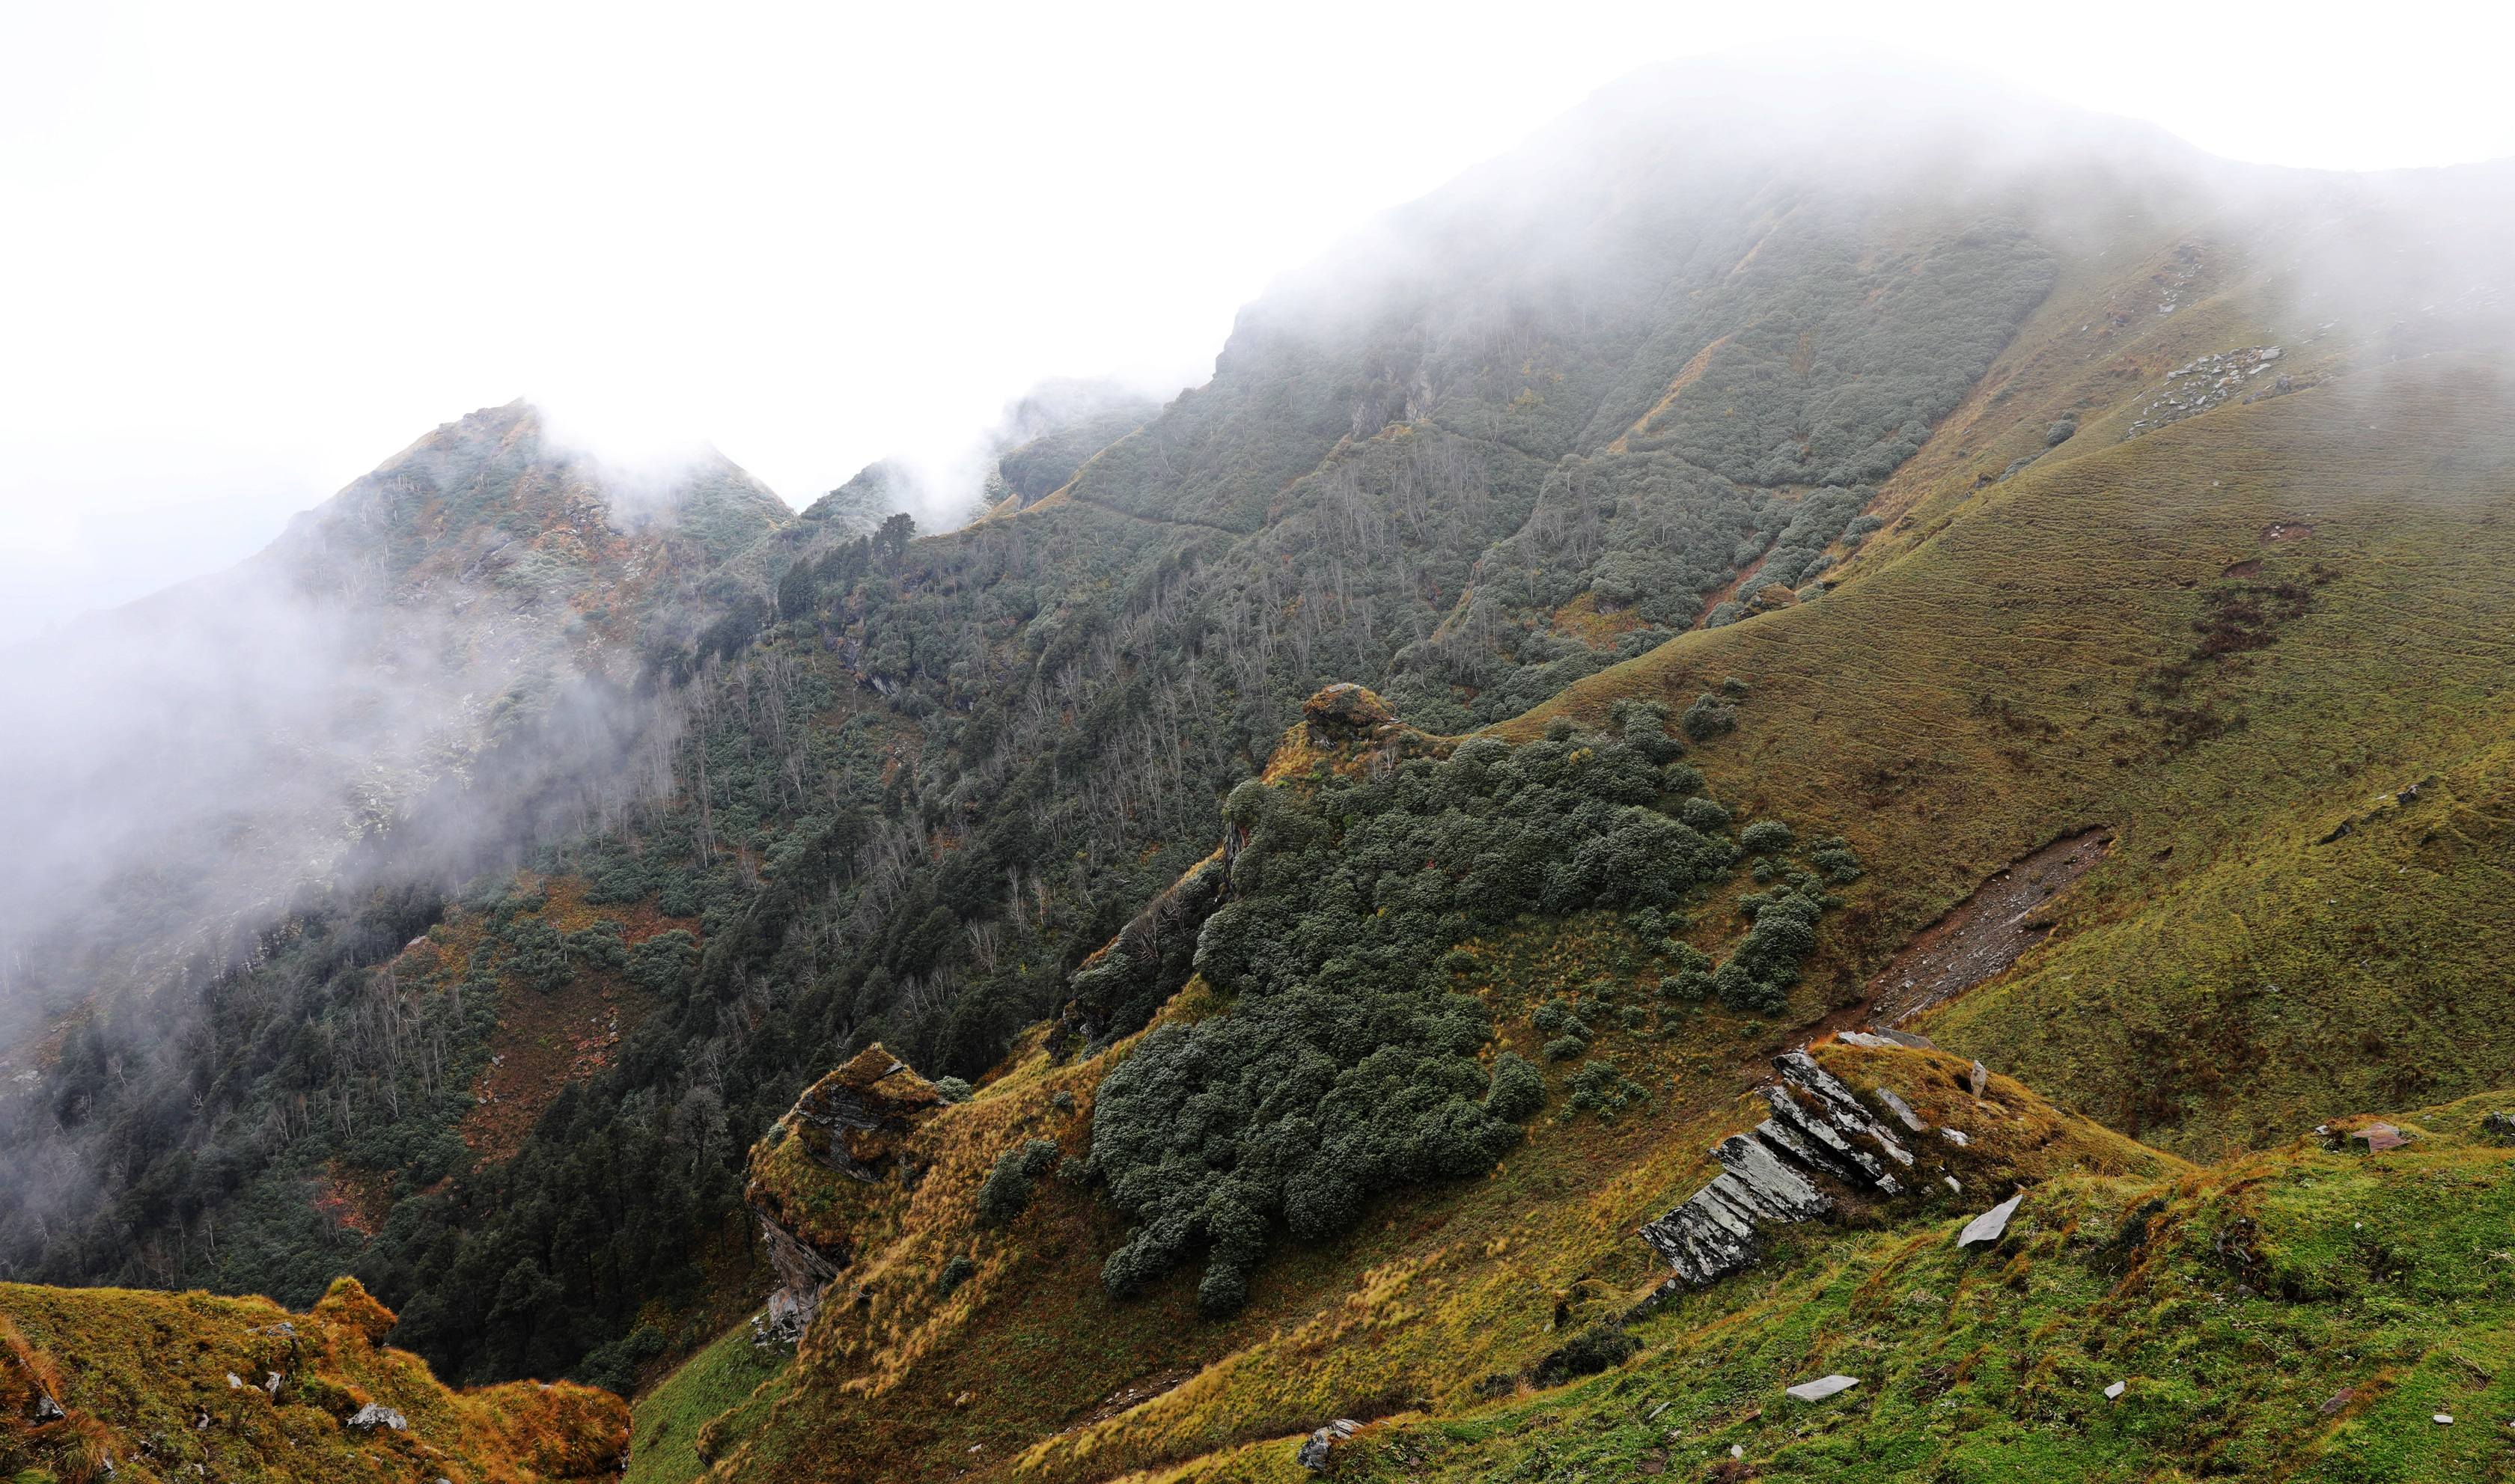 Rugged gully on the Naggar to Malana Trek